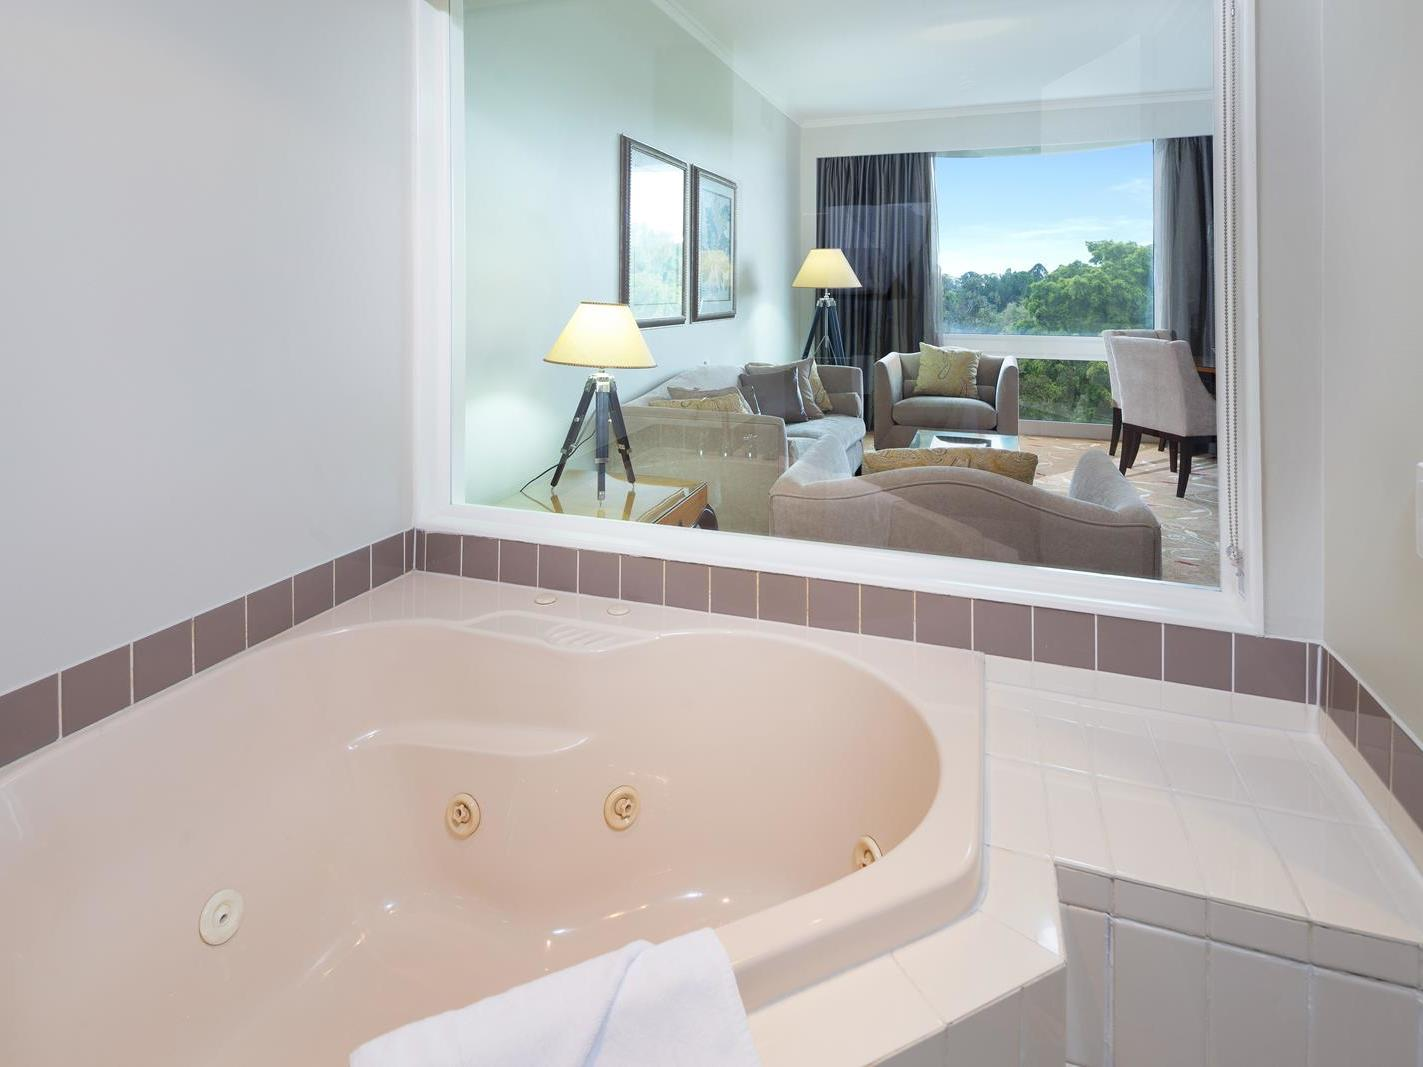 Bathtub with next to the living room with a beautiful view in Deluxe Spa Suite at Royal on the Park hotel